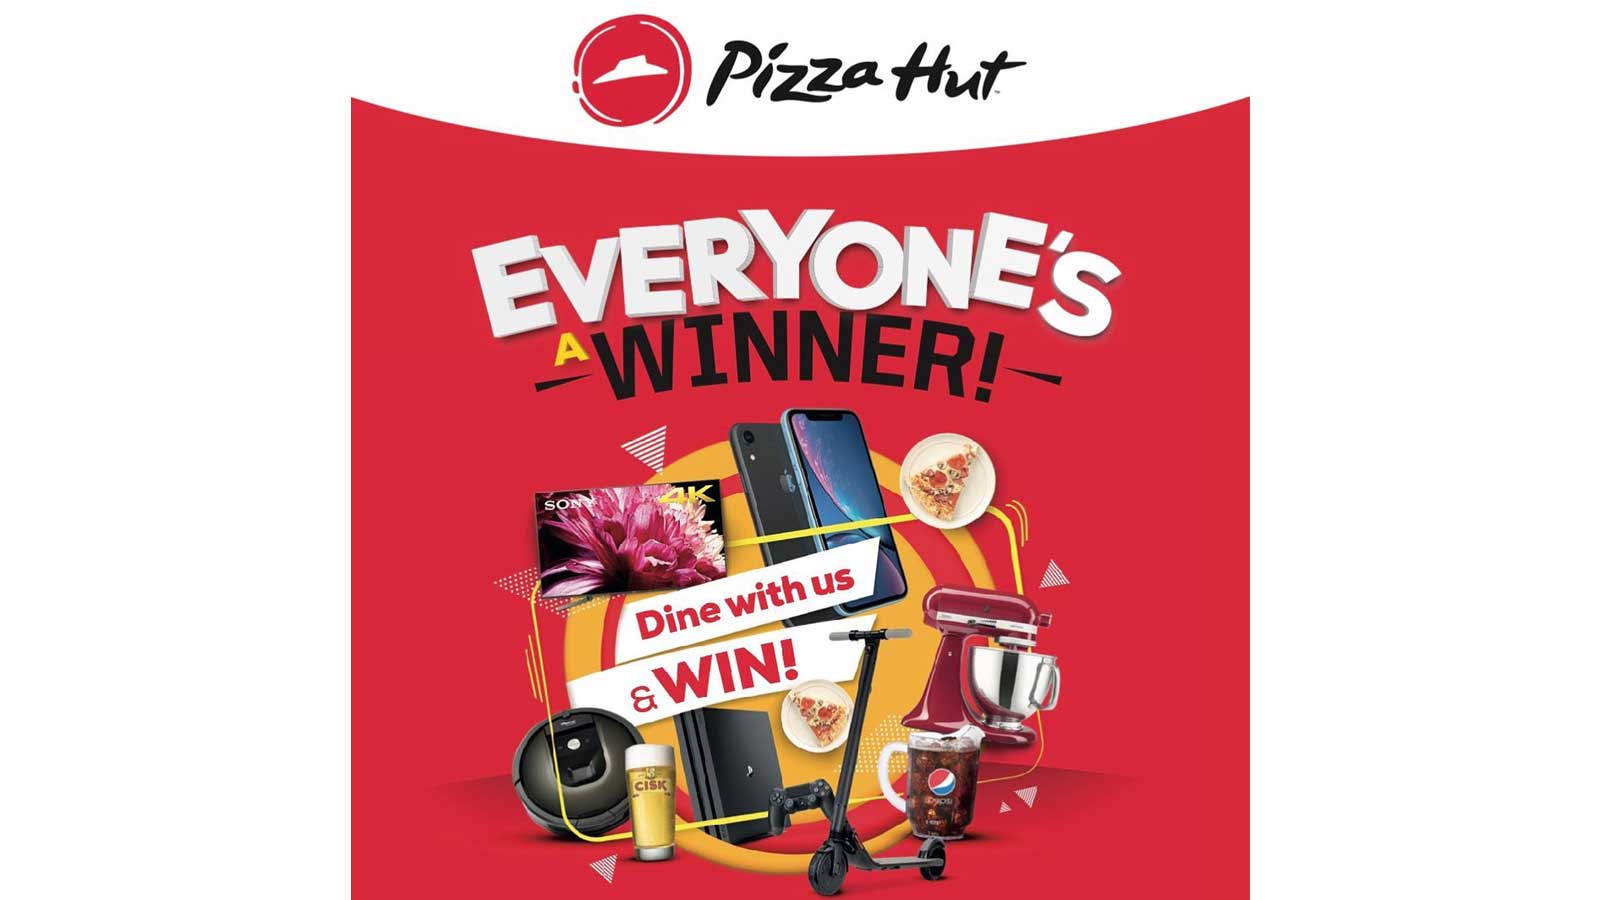 'Everyone's a winner' campaign back at Pizza Hut